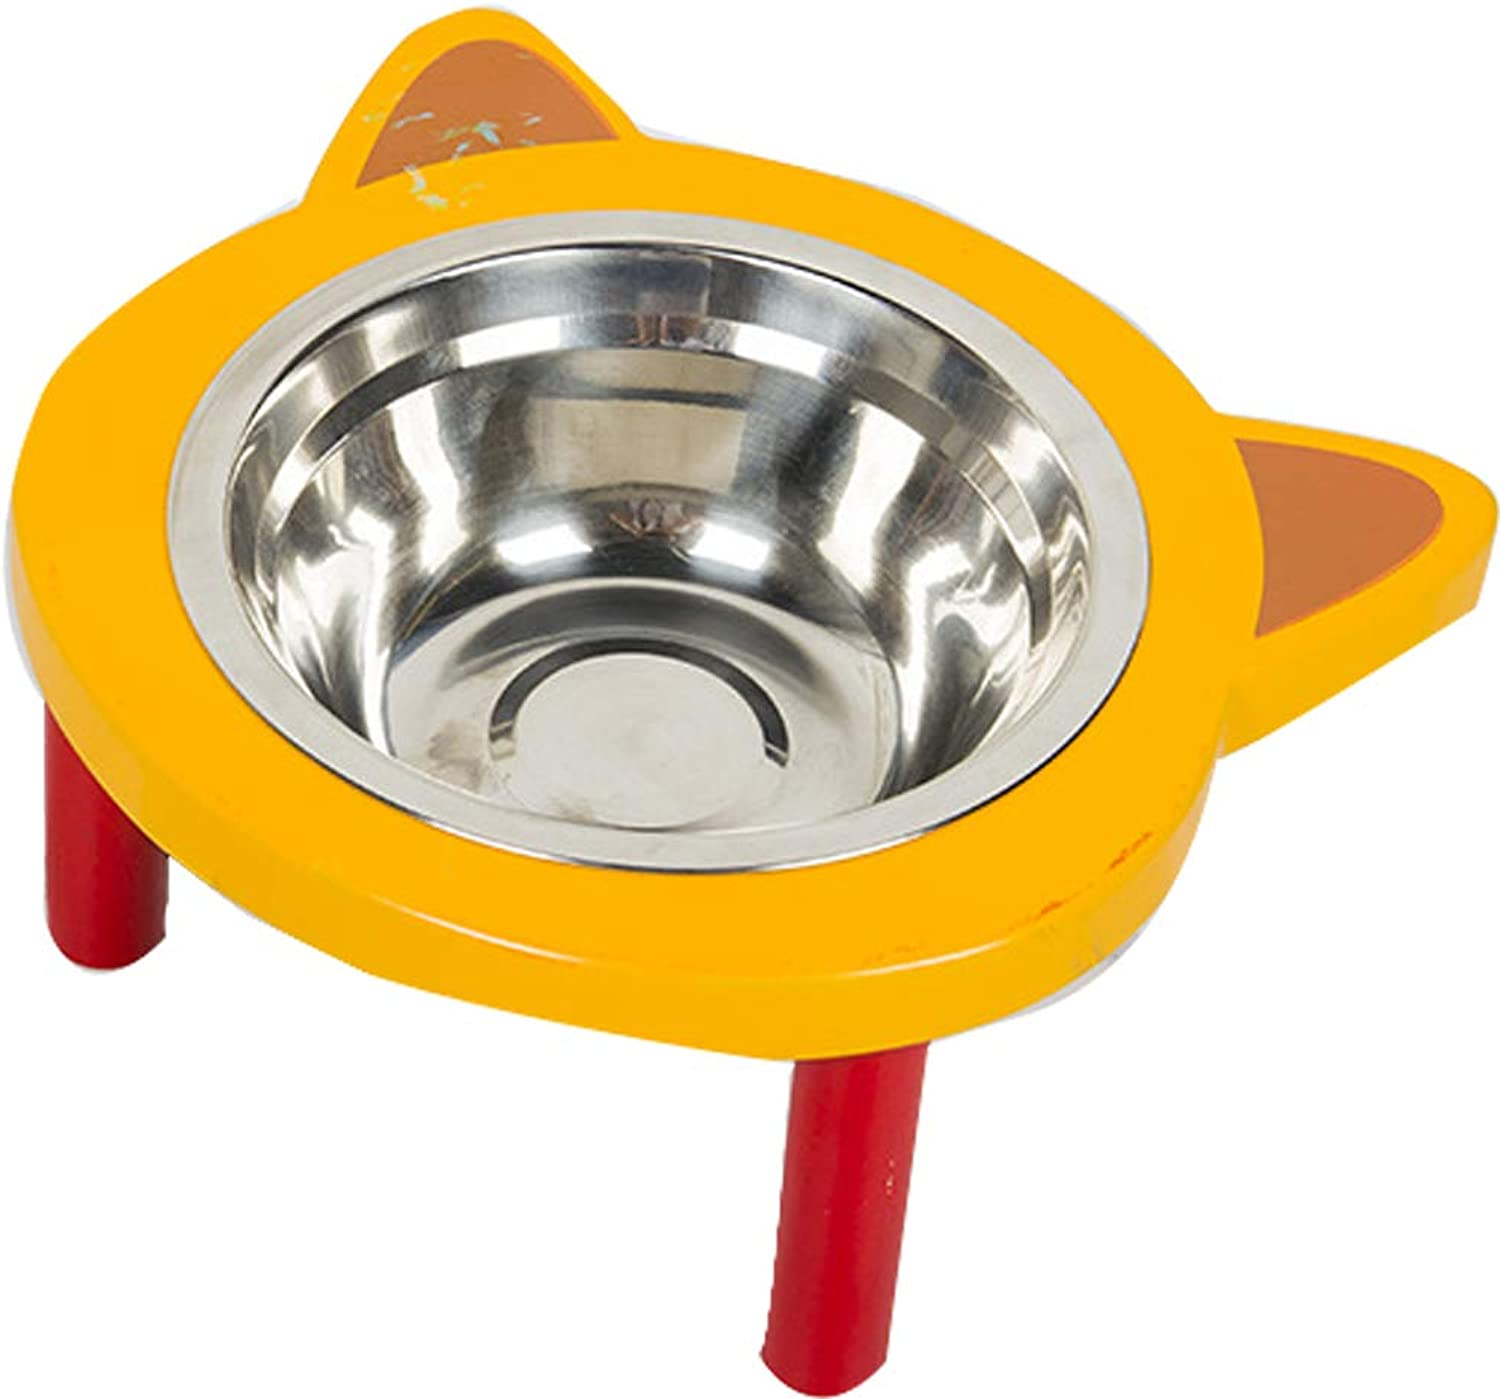 Dog Bowl Cat Bowl Stainless Steel Food Bowl Cartoon Cute Pet Supplies Thickened Large Capacity Wooden Pet Bowl,Yellow